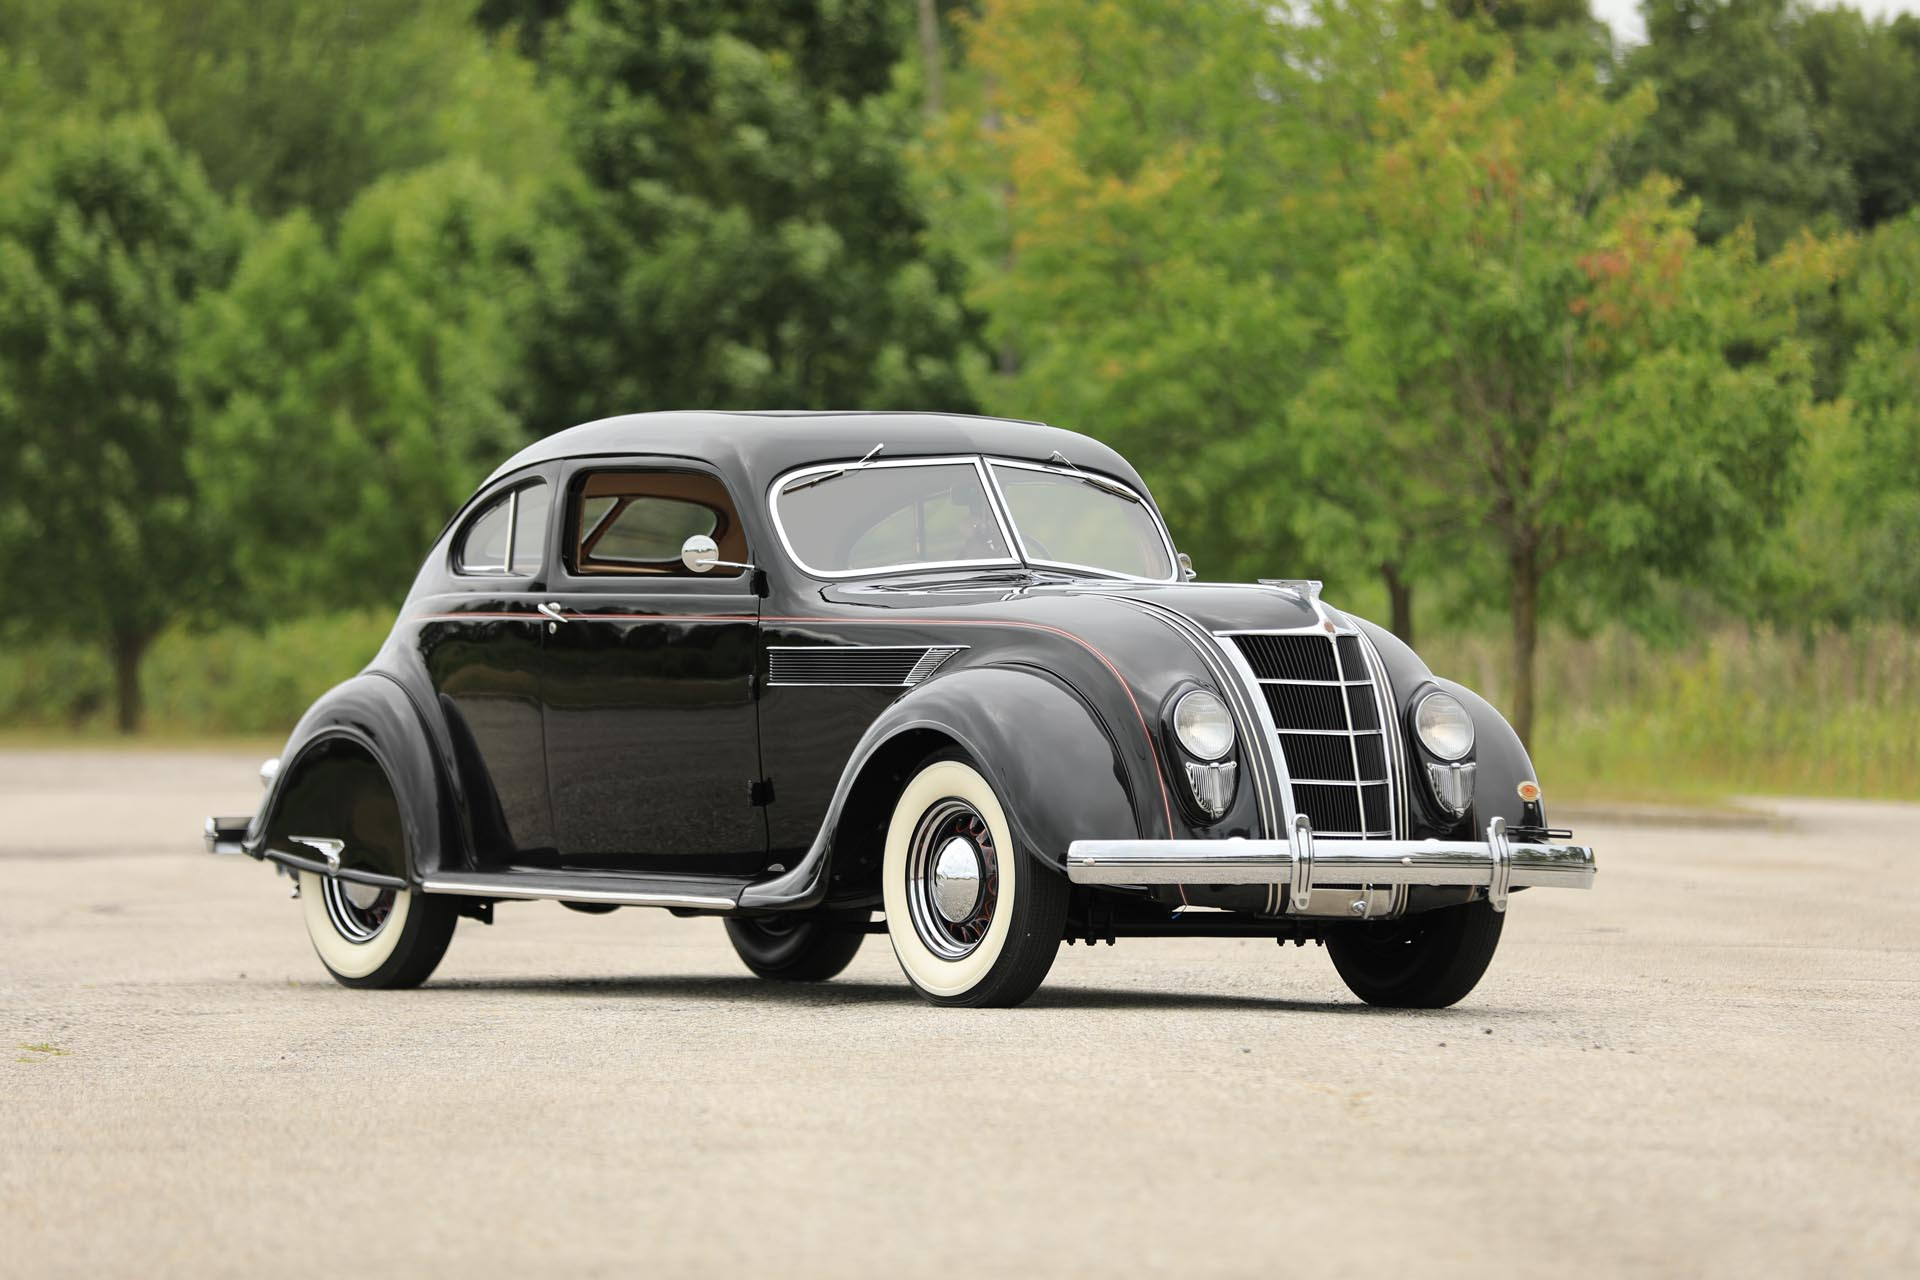 1935 Chrysler  Airflow Coupe